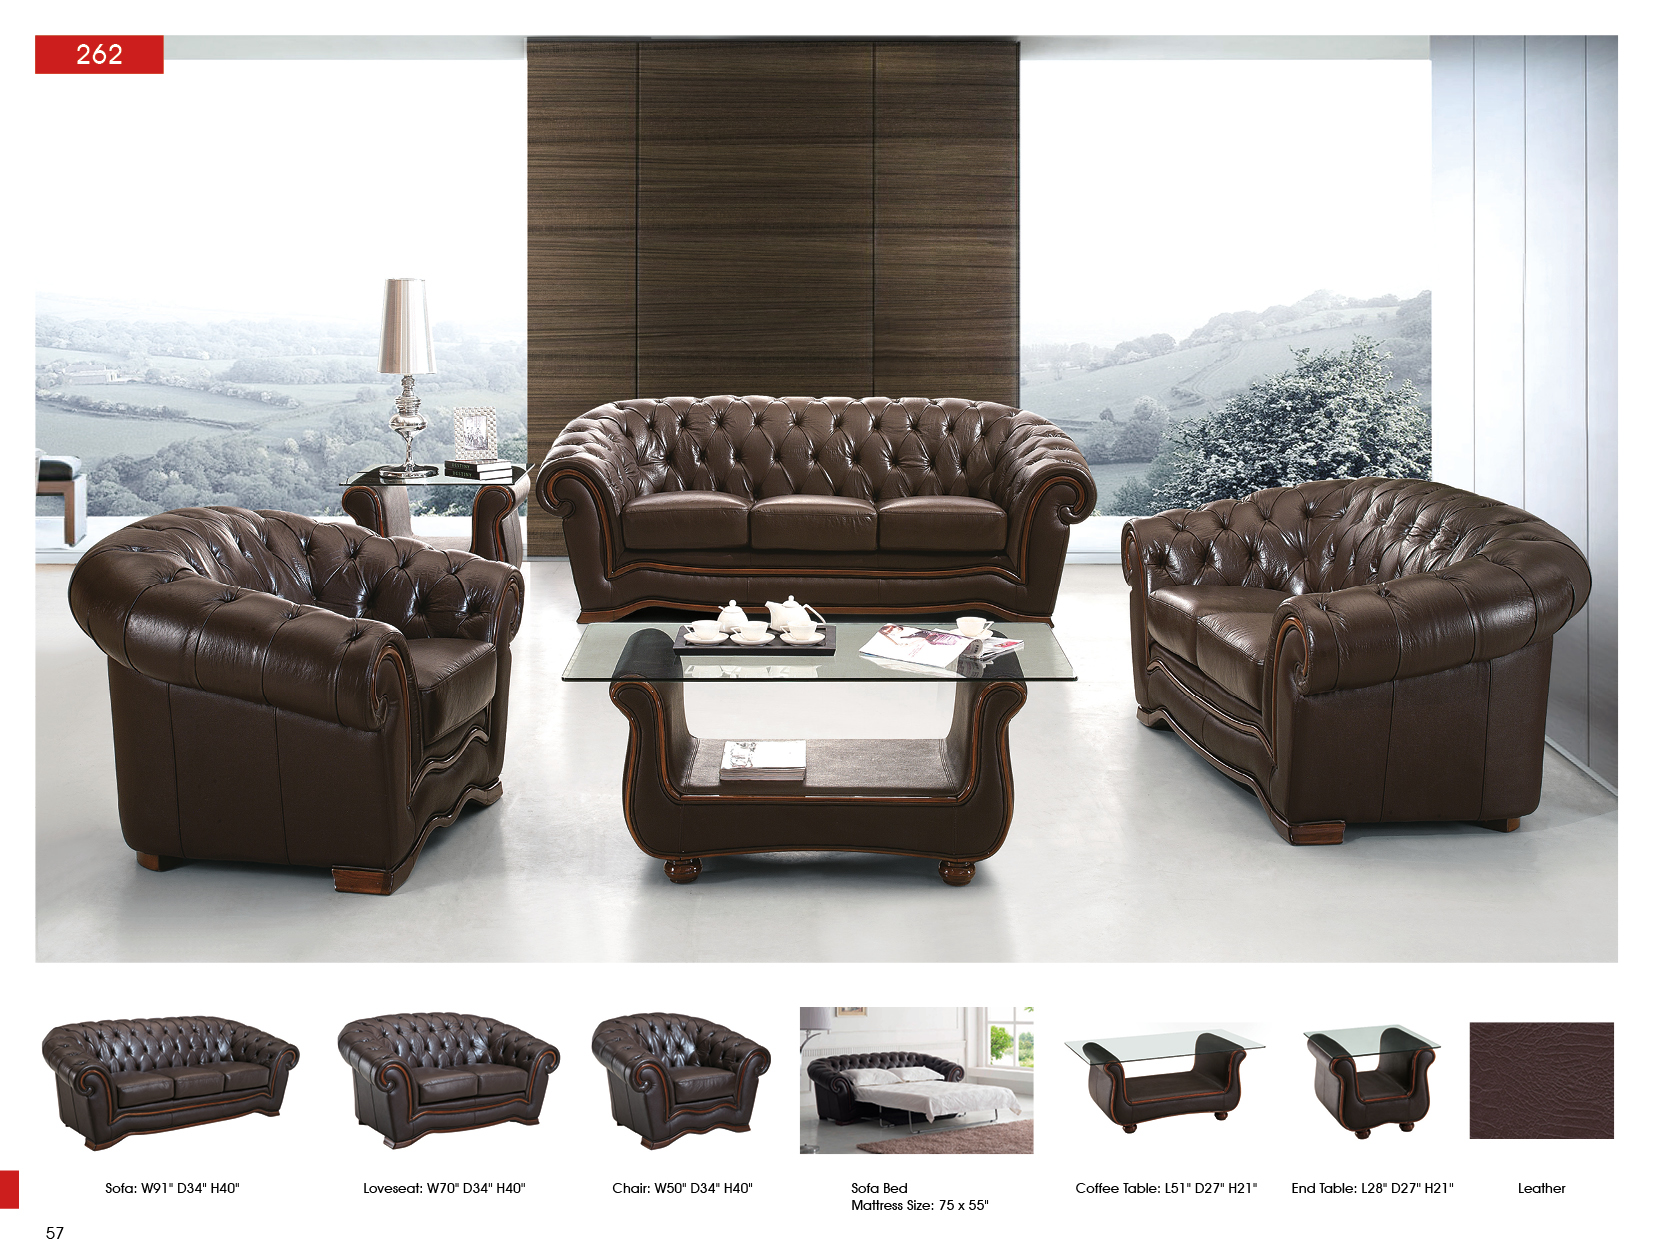 262 Full Leather Sofa Beds Living Room Furniture